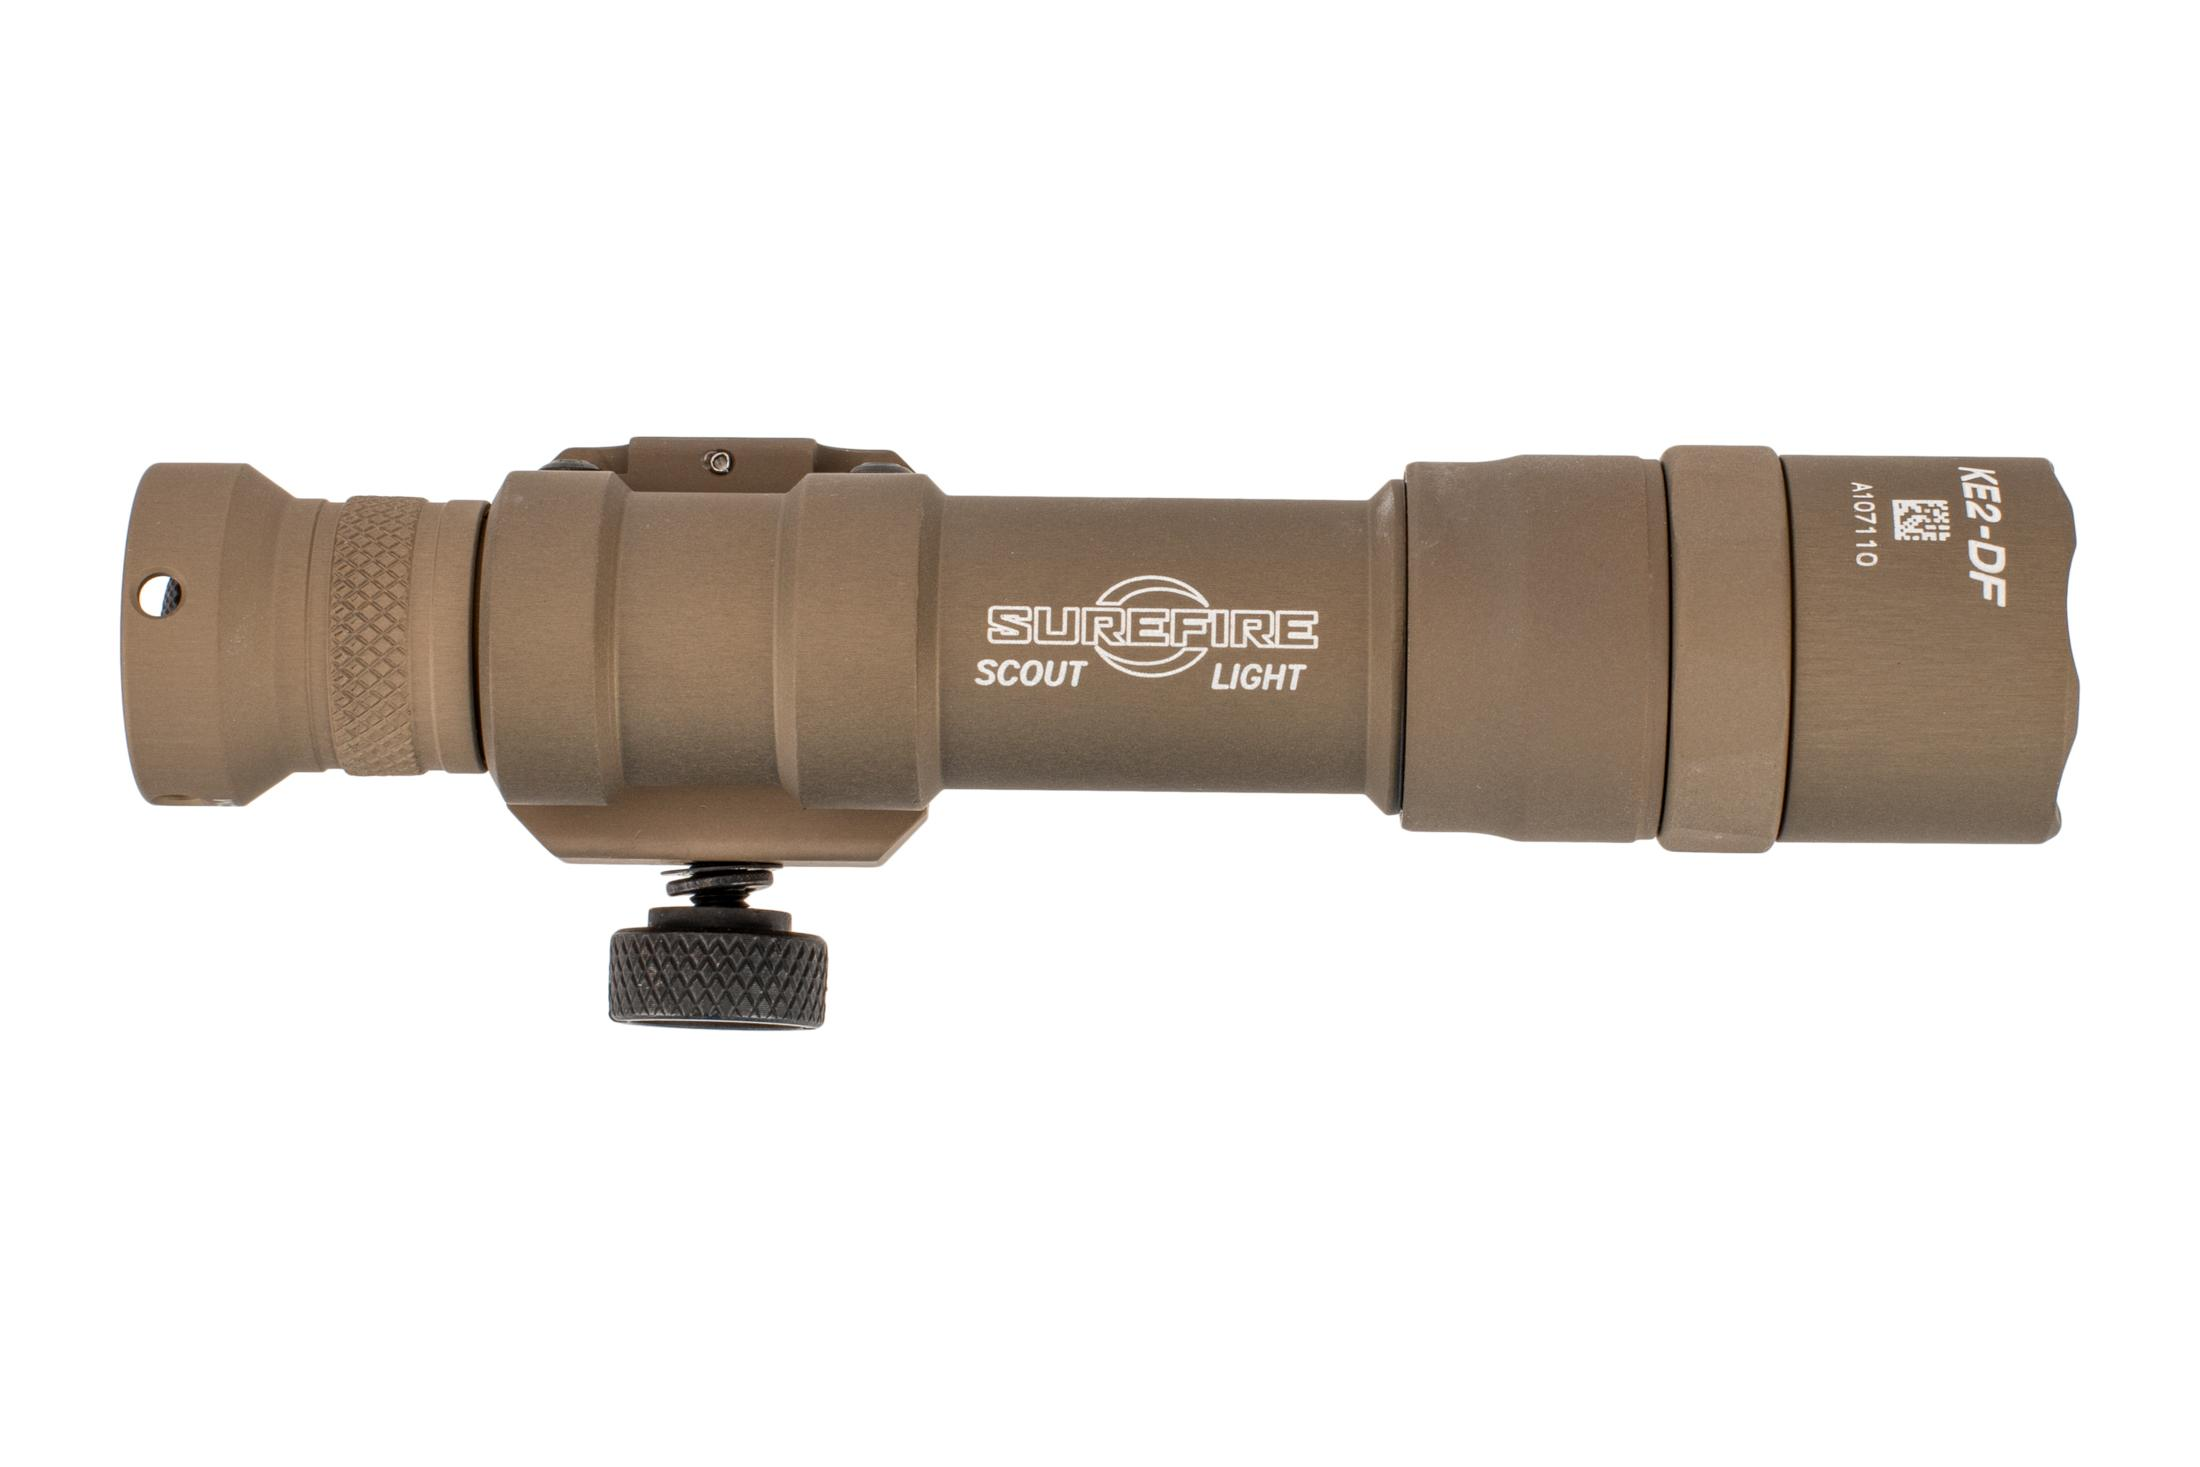 SureFire M600DF Scout Dual Fuel 1500 Lumen Weapon Light - Tan